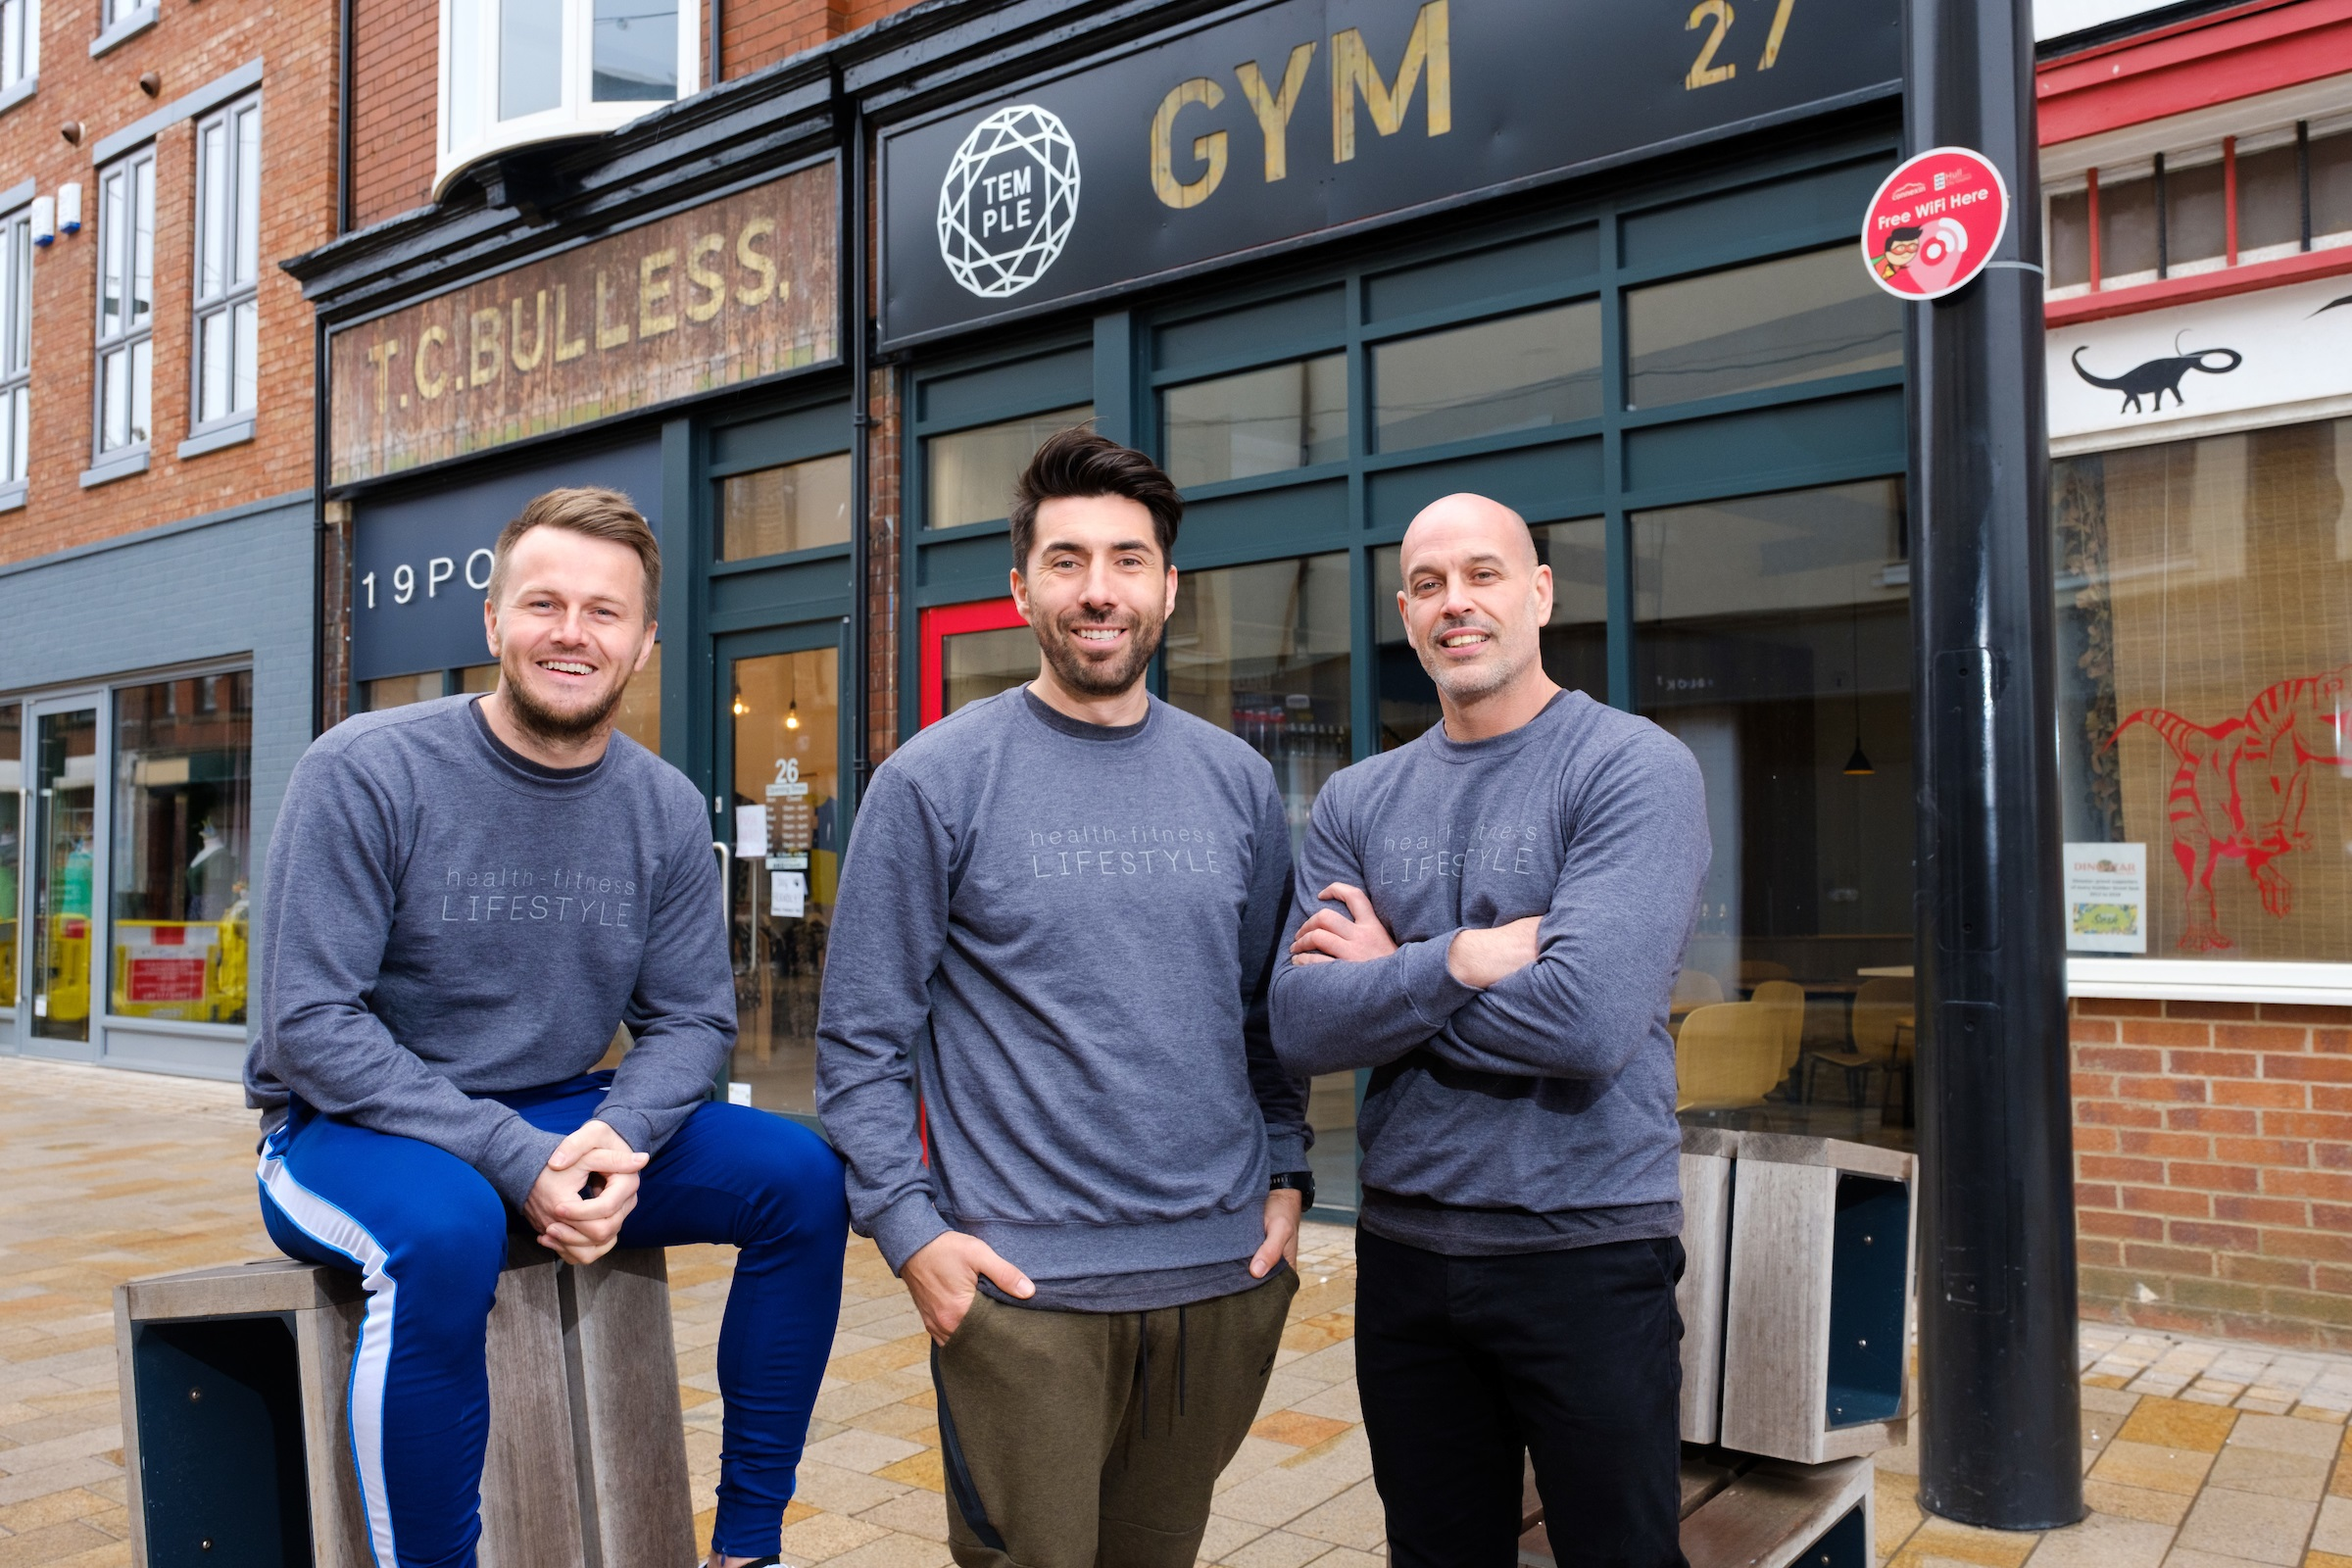 Business partners, from left, Wayne Audsley, Riccardo Seaton and Dale Robinson outside their The Temple gym – the latest new venture in the Fruit Market urban village.